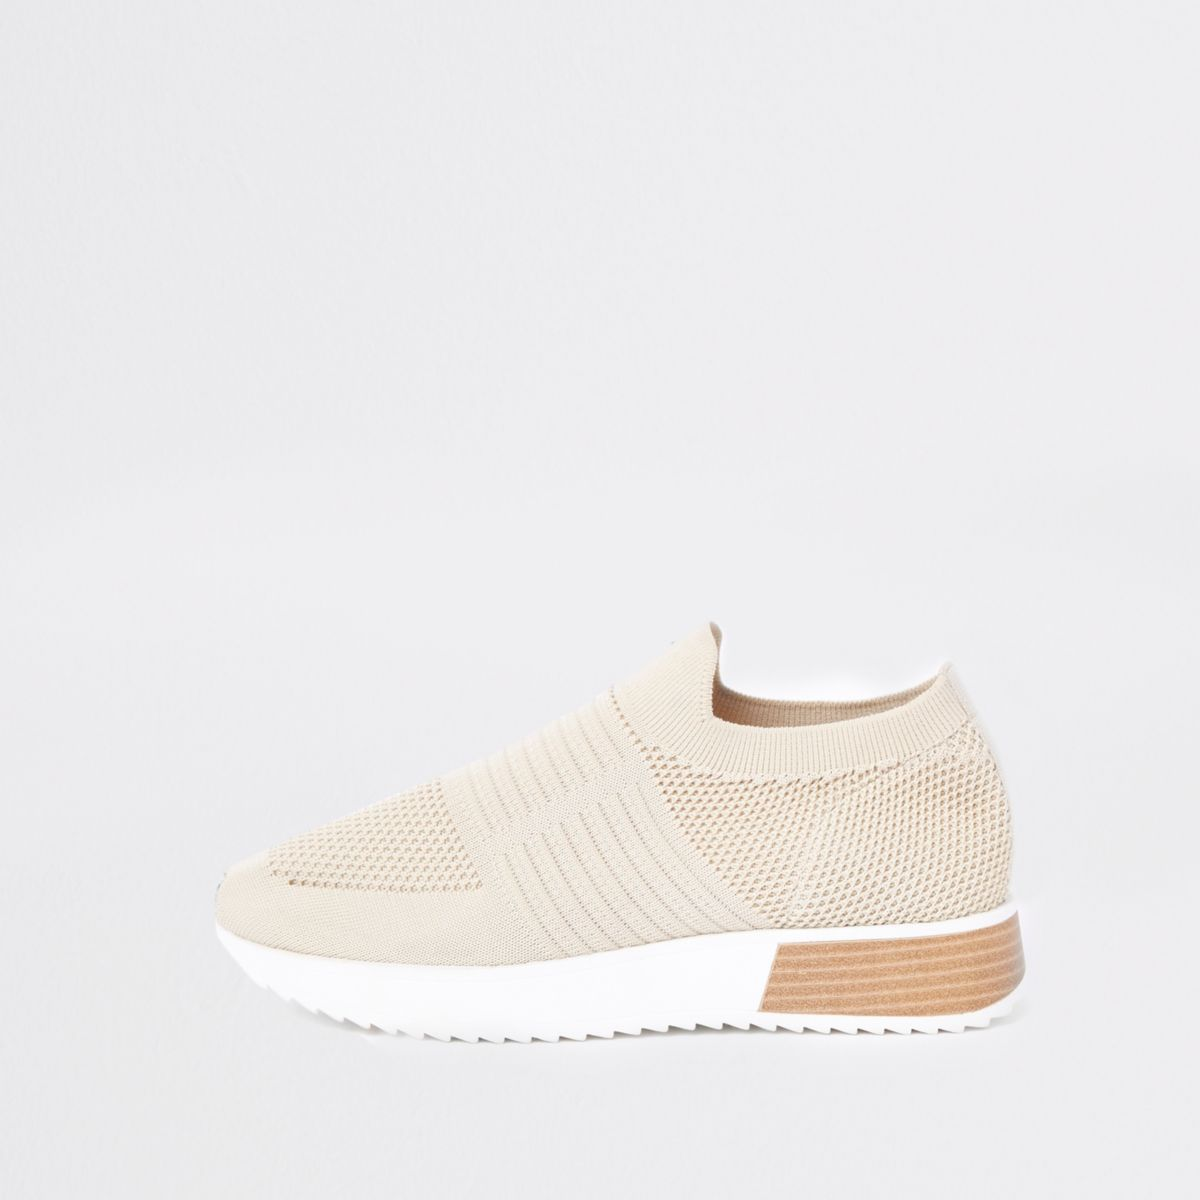 Beige knitted runner sneakers